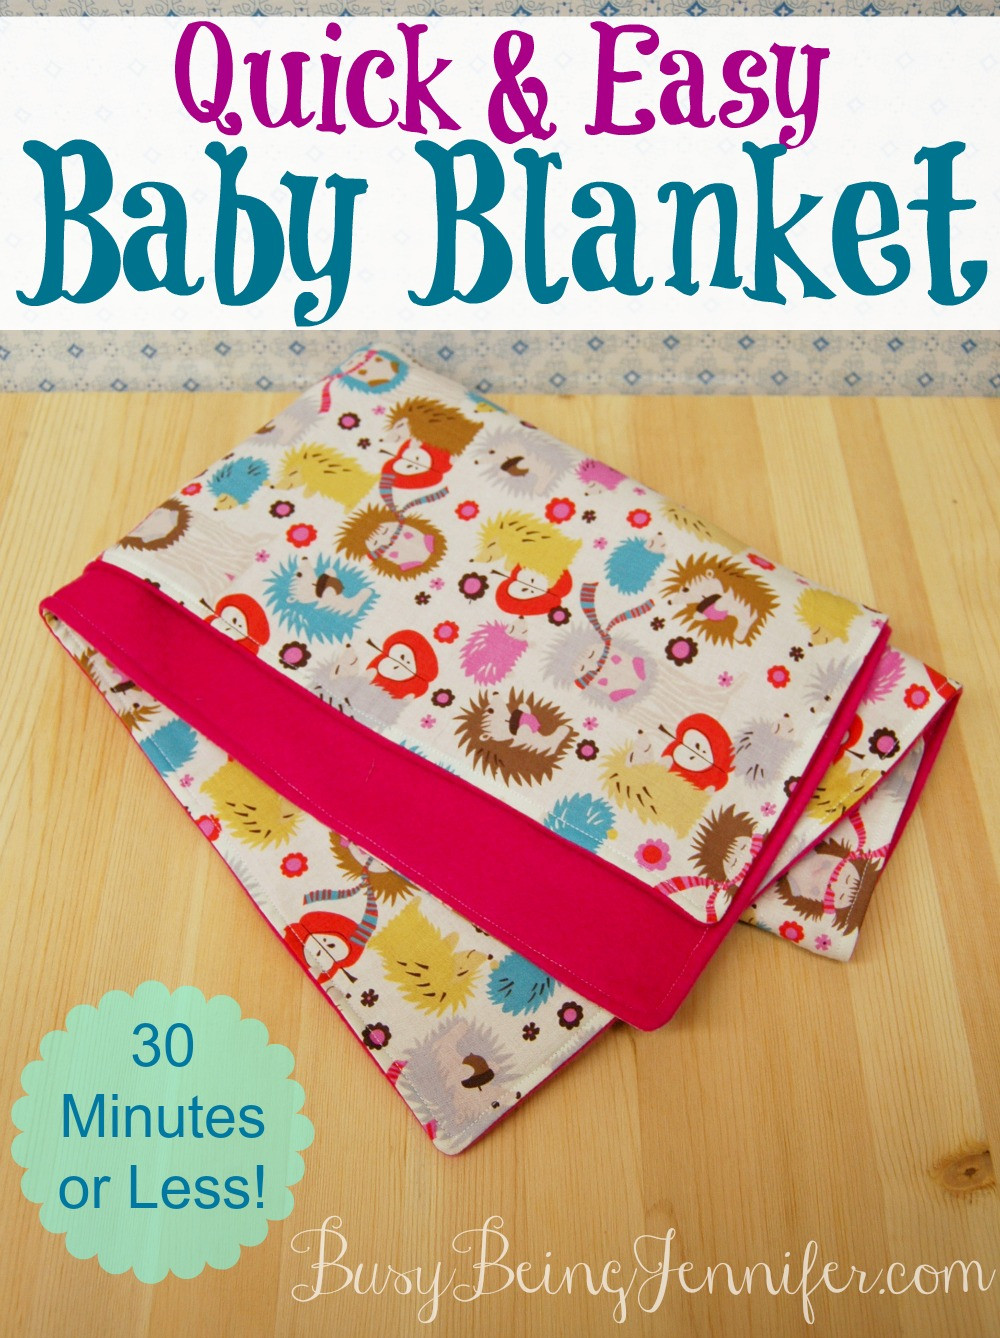 Easy Baby Blanket Lovely A Quick and Easy Baby Blanket Busy Being Jennifer Of Marvelous 42 Images Easy Baby Blanket